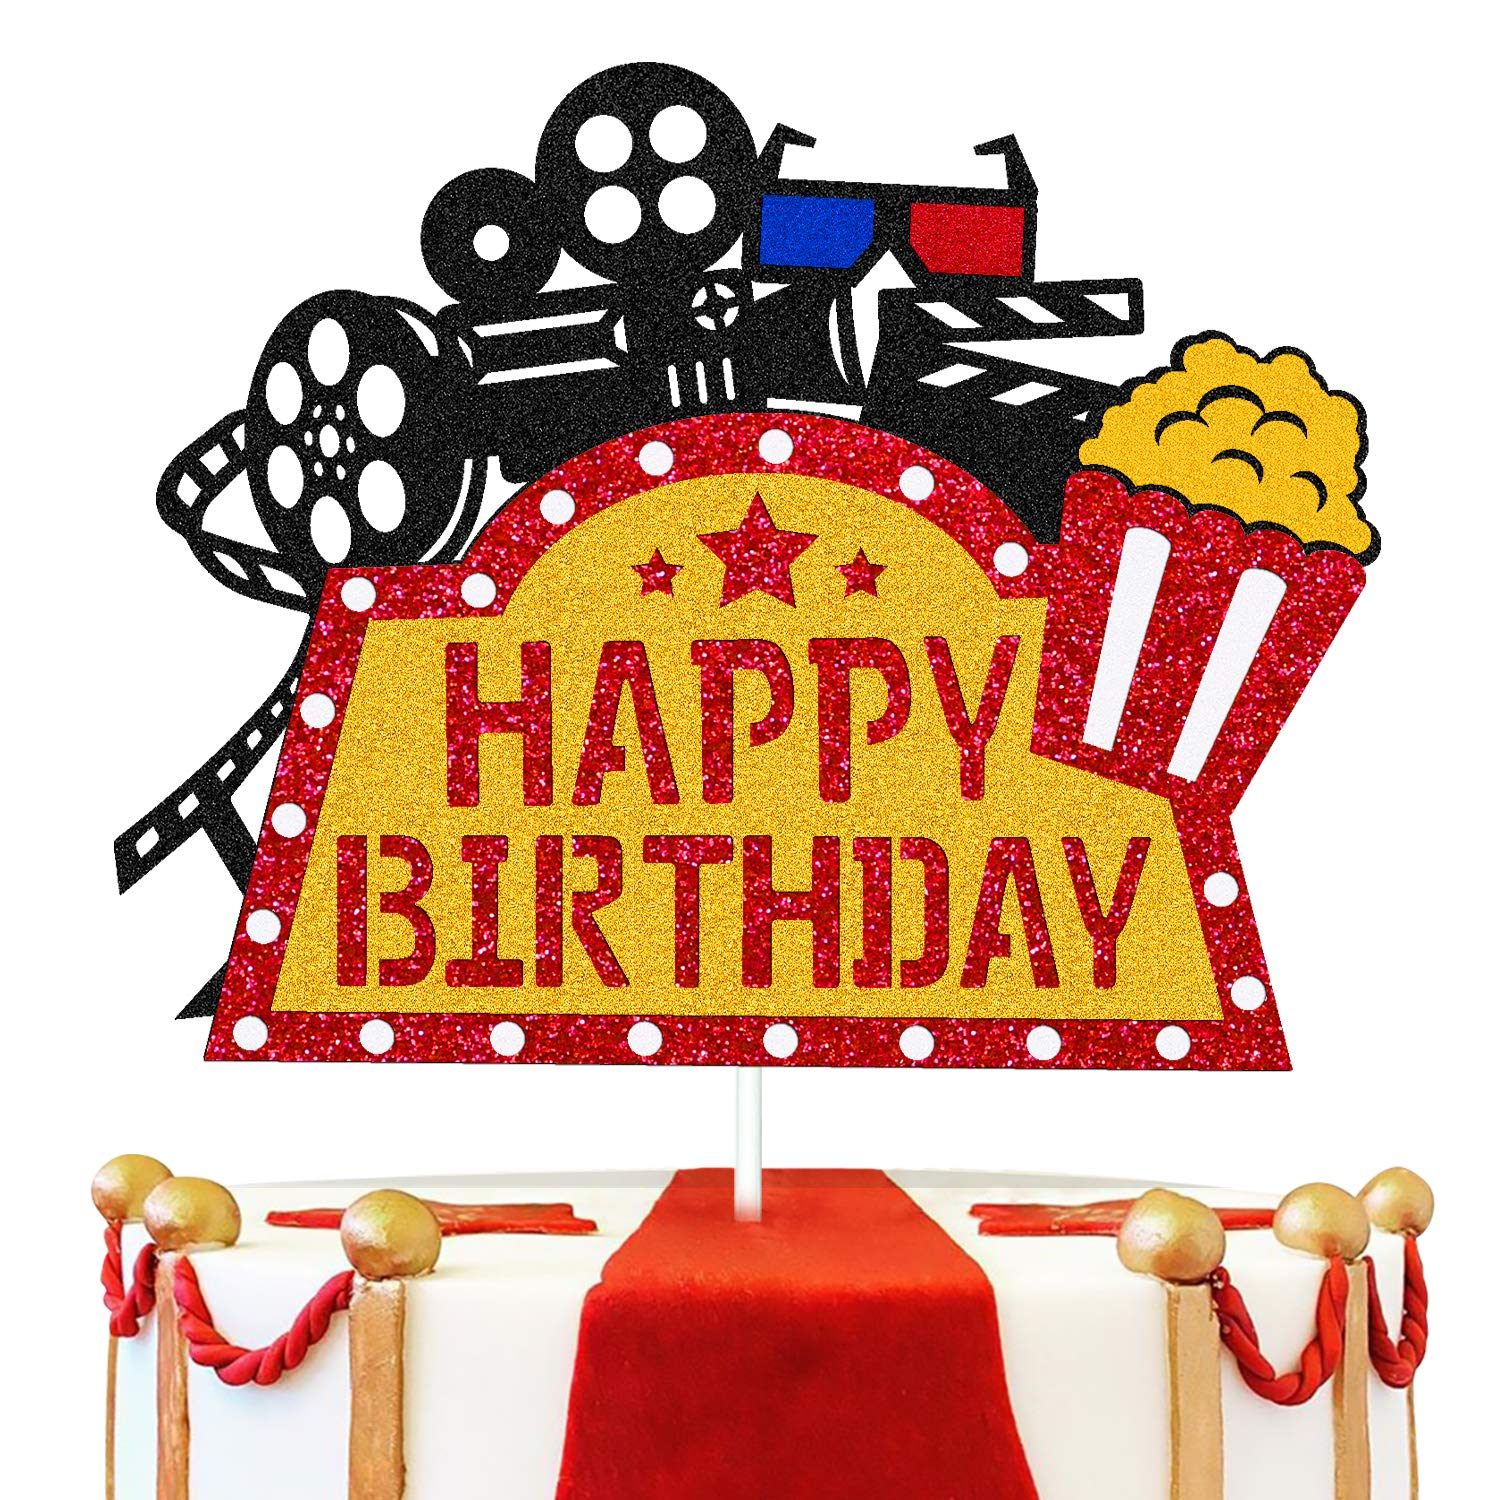 Movie Night Cake Topper Happy Birthday Sign Cake Decorations for Theater Video Recorder Hollywood Roll Camera Popcorn Family Film Themed Kids Boy Girl Birthday Party Supplies Glitter Black Décor